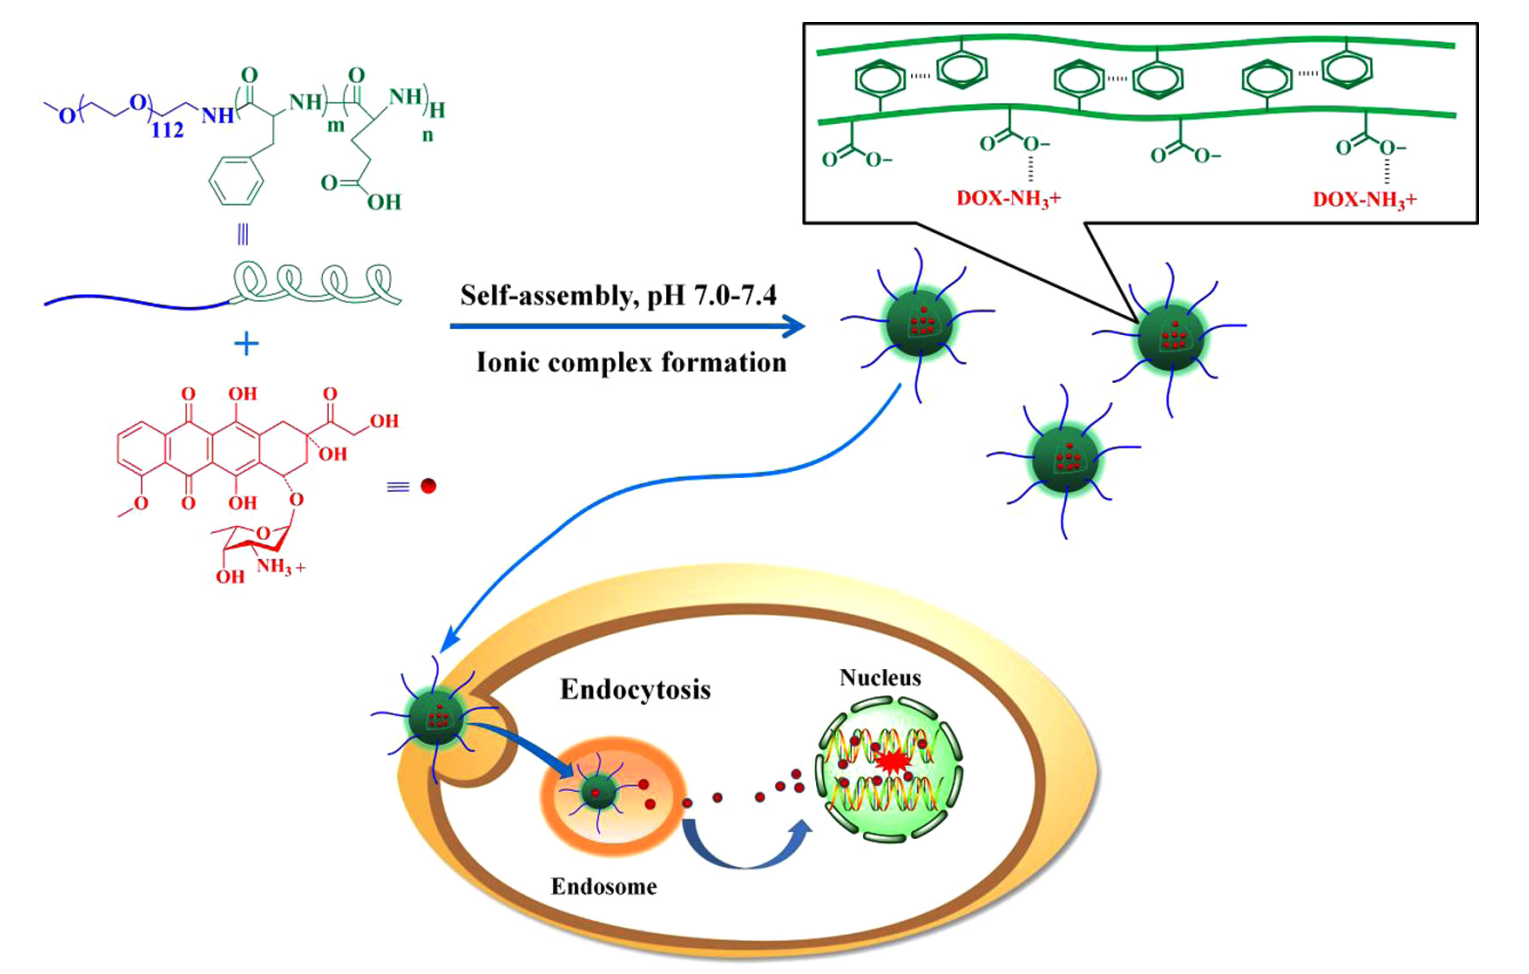 Doxorubicin-loaded amphiphilic polypeptide-based nanoparticles as an efficient drug delivery system for cancer therapy